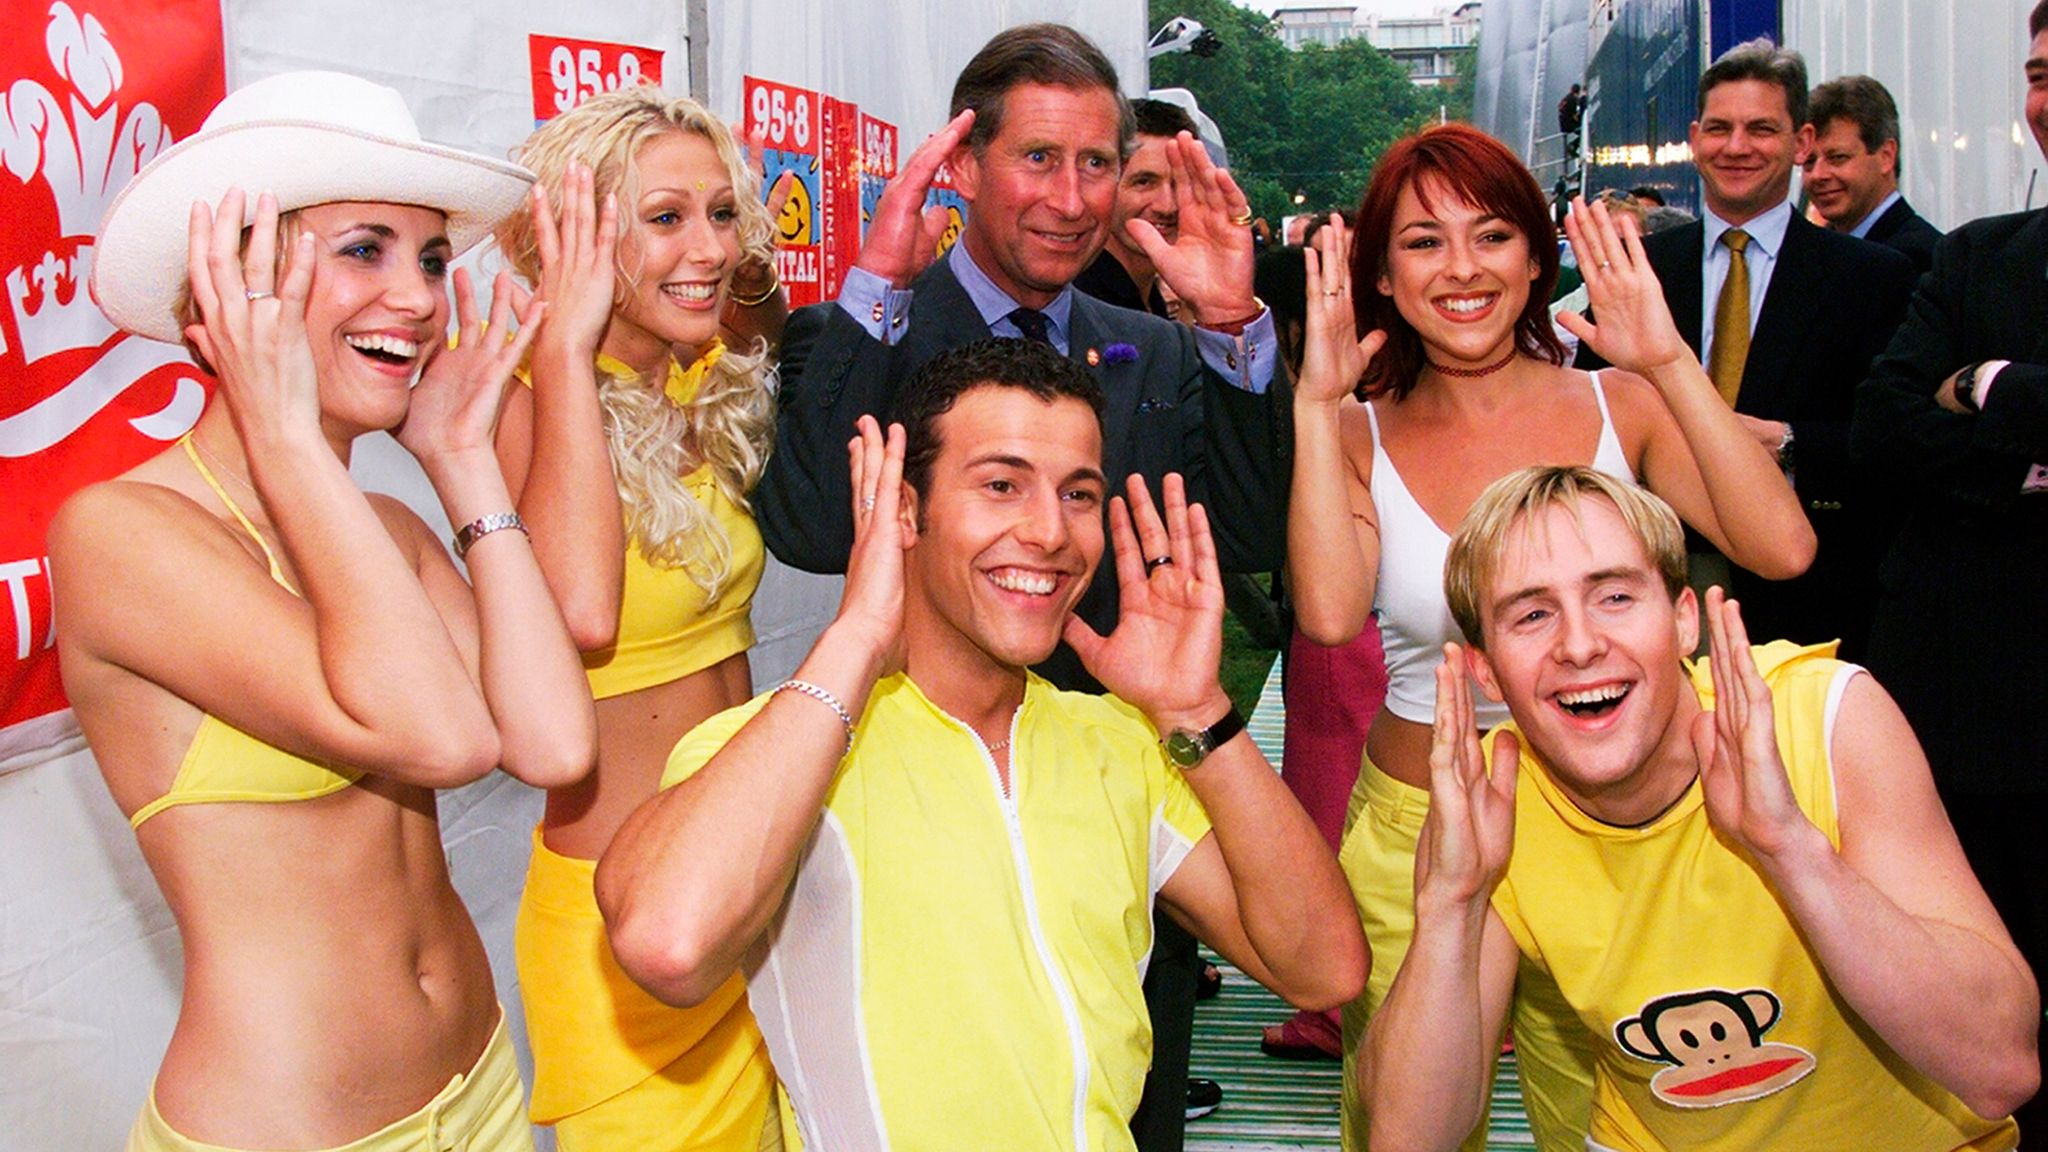 Steps and Prince Charles at Party In The Park in 1999